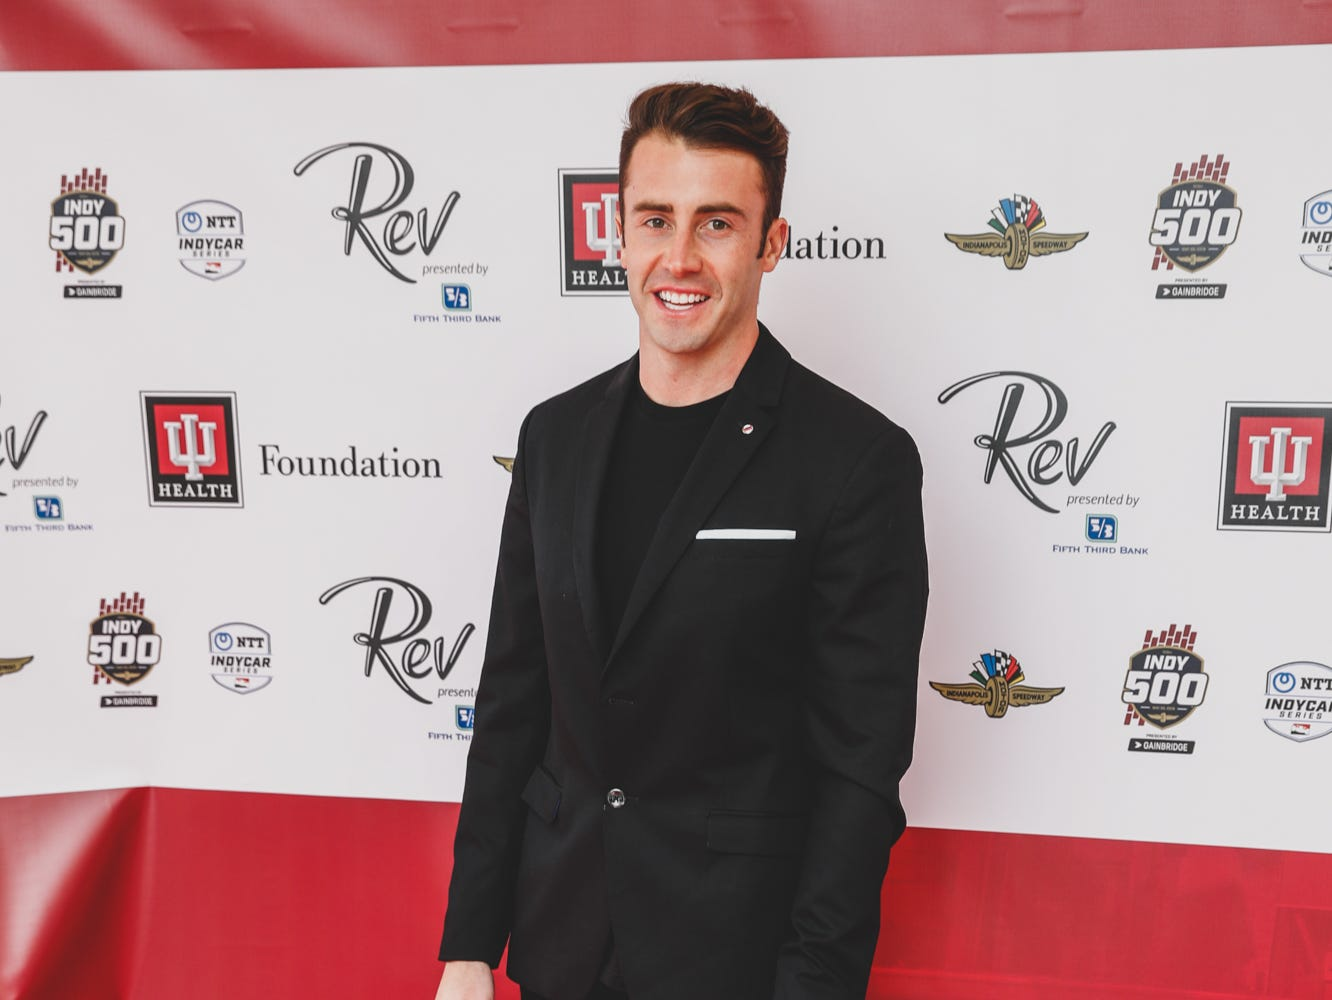 IndyCar driver James Davison walks the red carpet at the Rev Indy fundraiser, held at the Indianapolis Motor Speedway on Saturday, May 4, 2019. Funds raised support the IU Health Foundation statewide and the IU Health Emergency Medical Center at IMS.